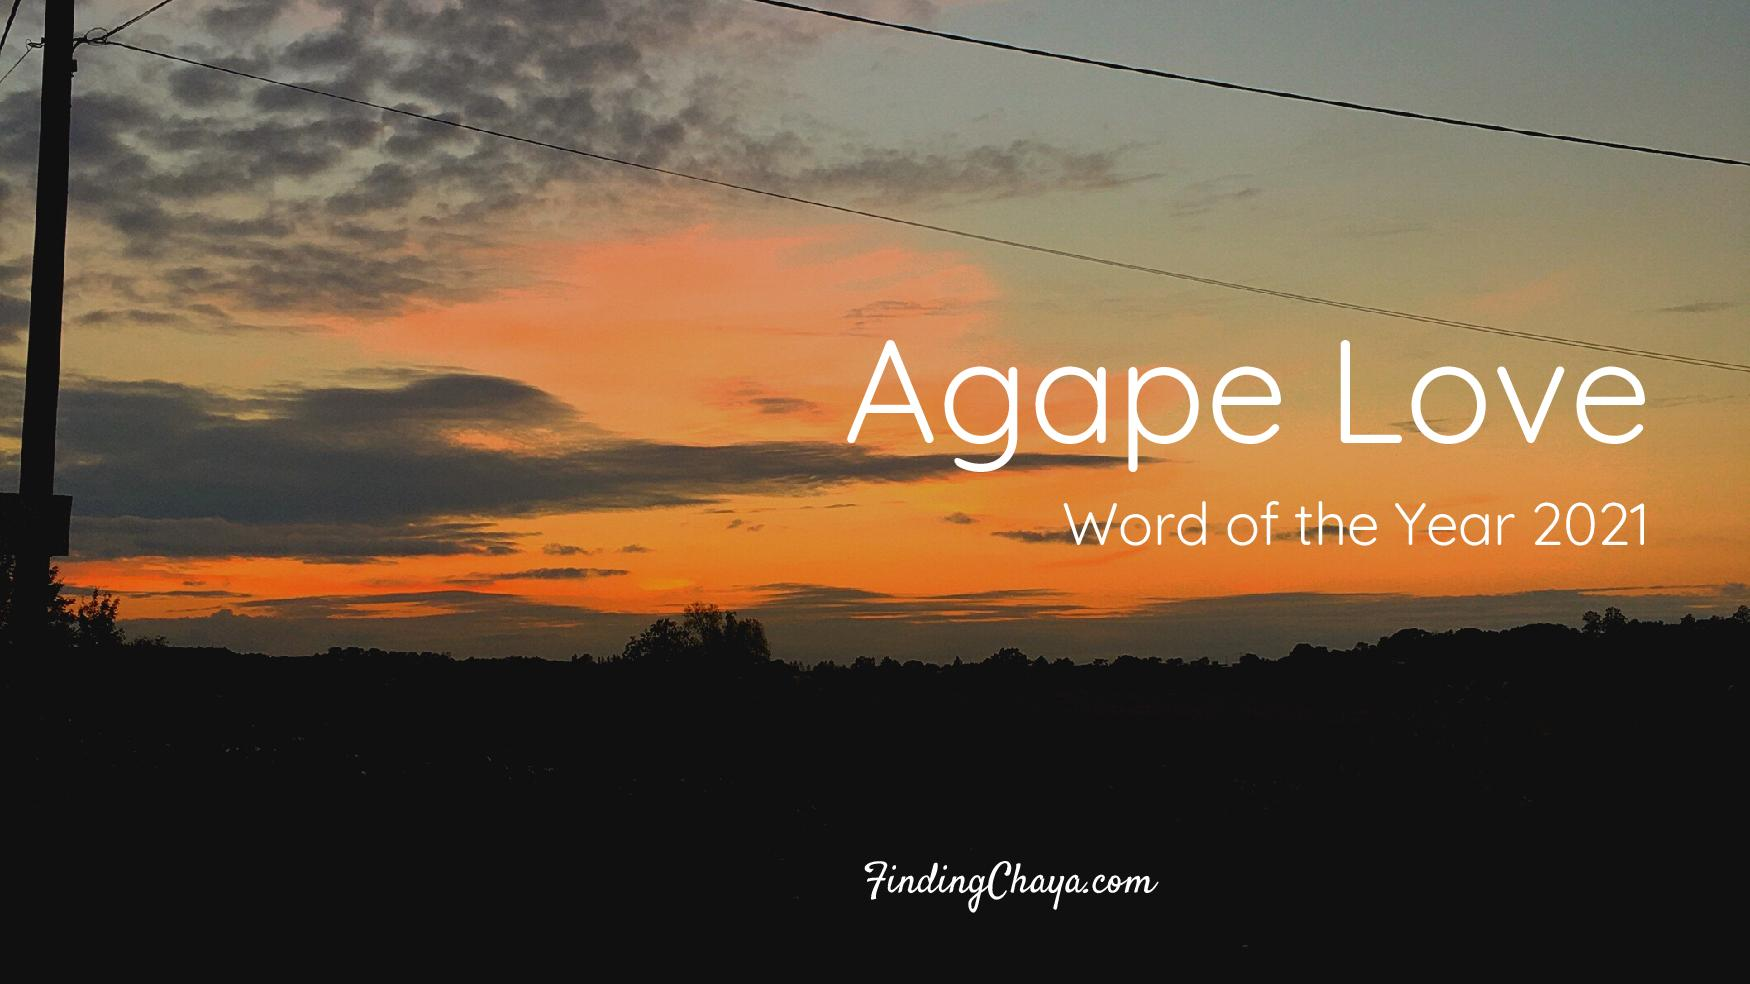 Agape Love: Word of the Year 2021